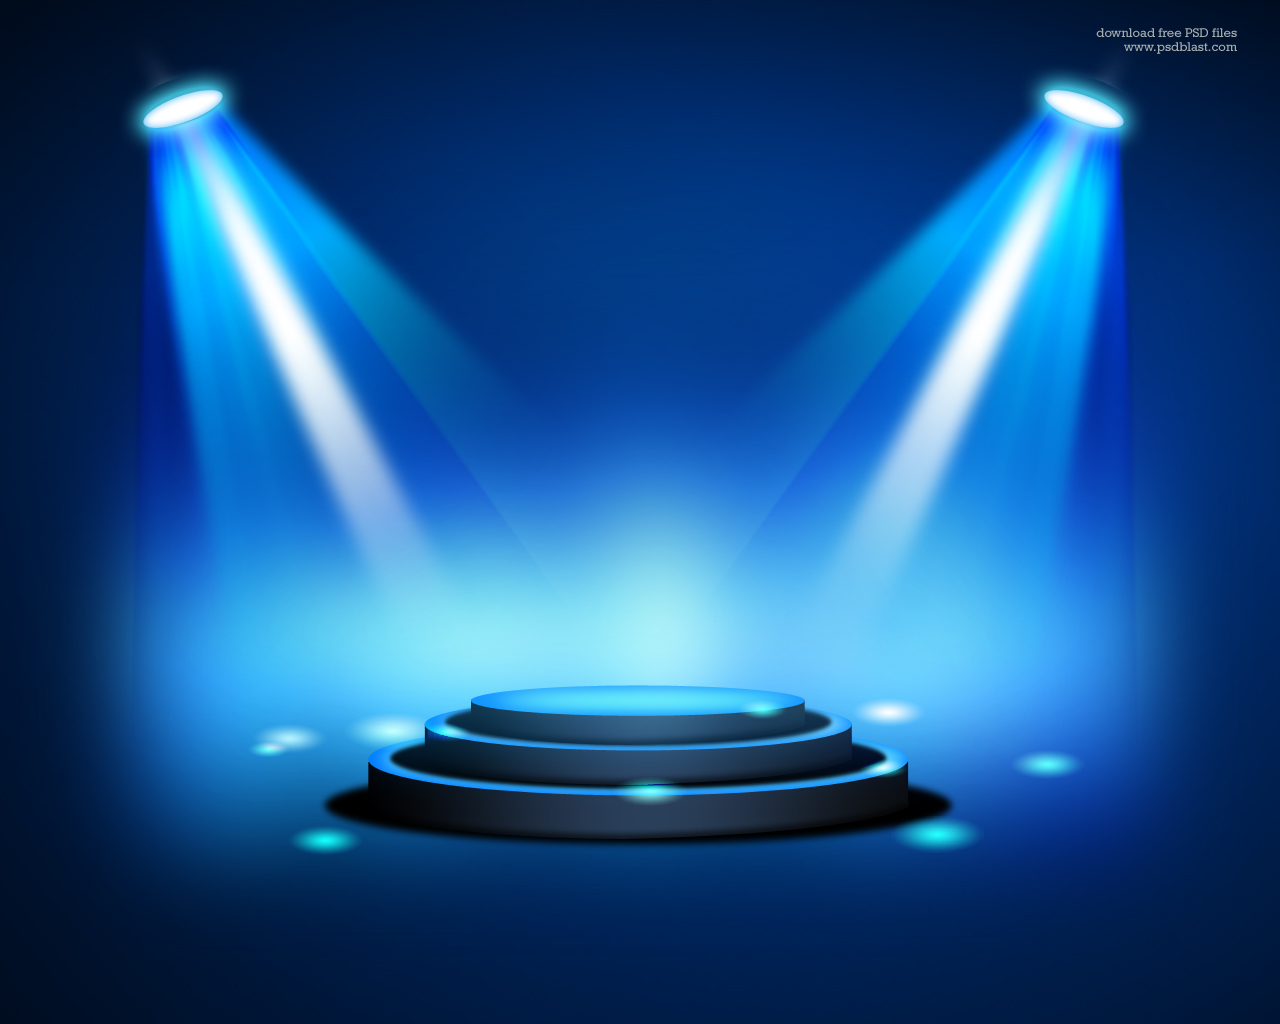 background entertainment dark stage background blue lighting stage 1280x1024